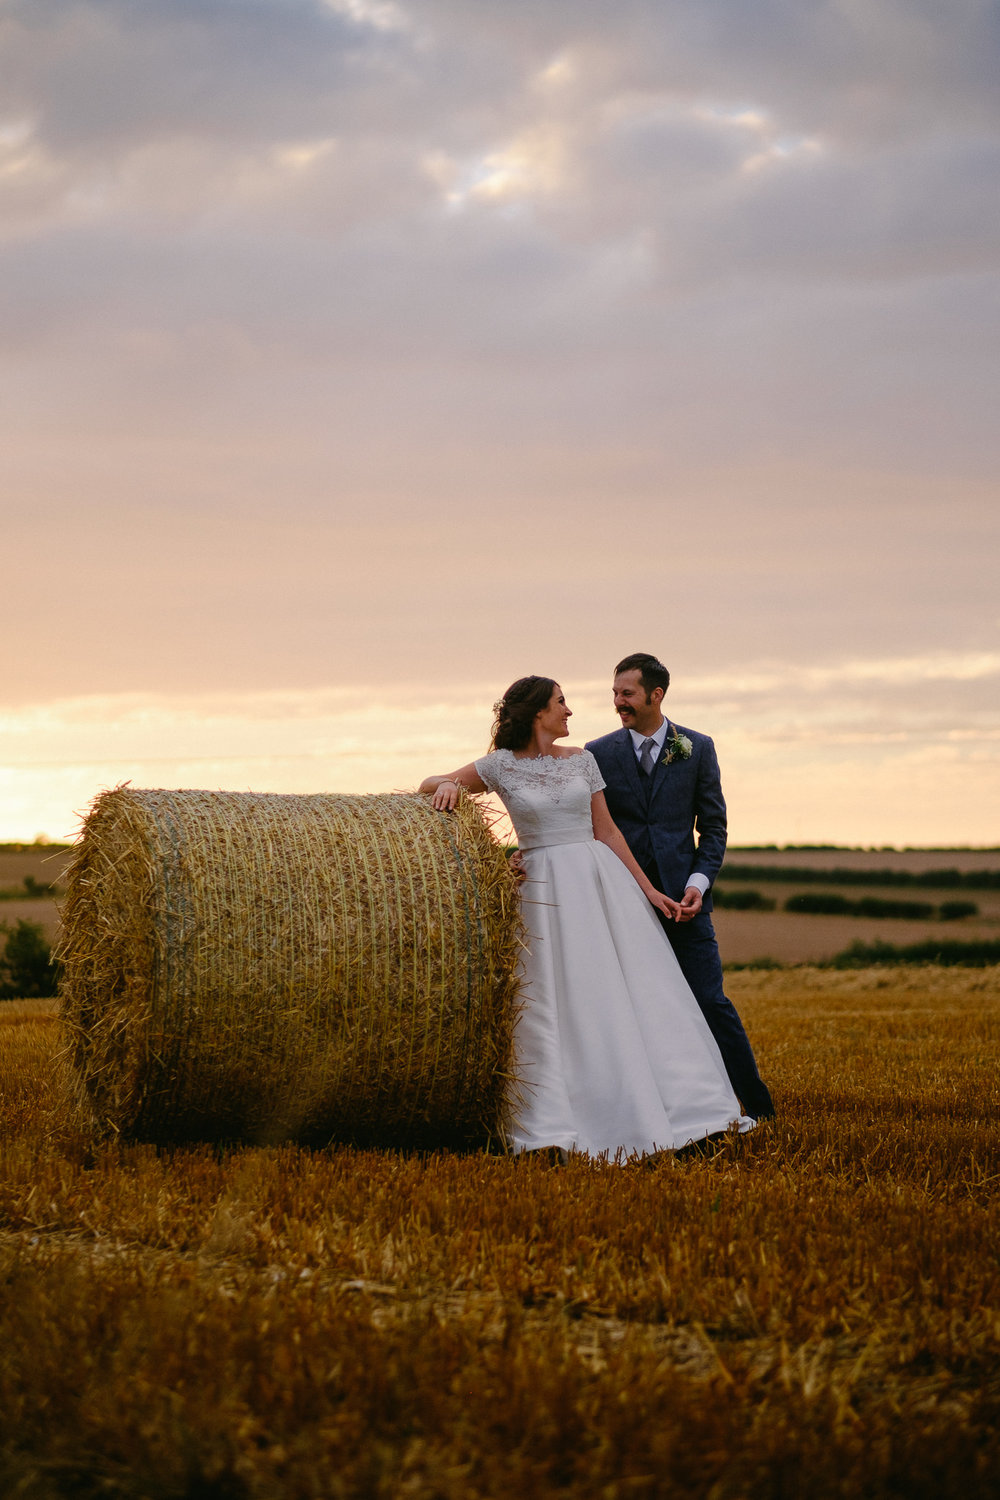 Bride and groom lean against a hay bale during sunset in Yorkshire